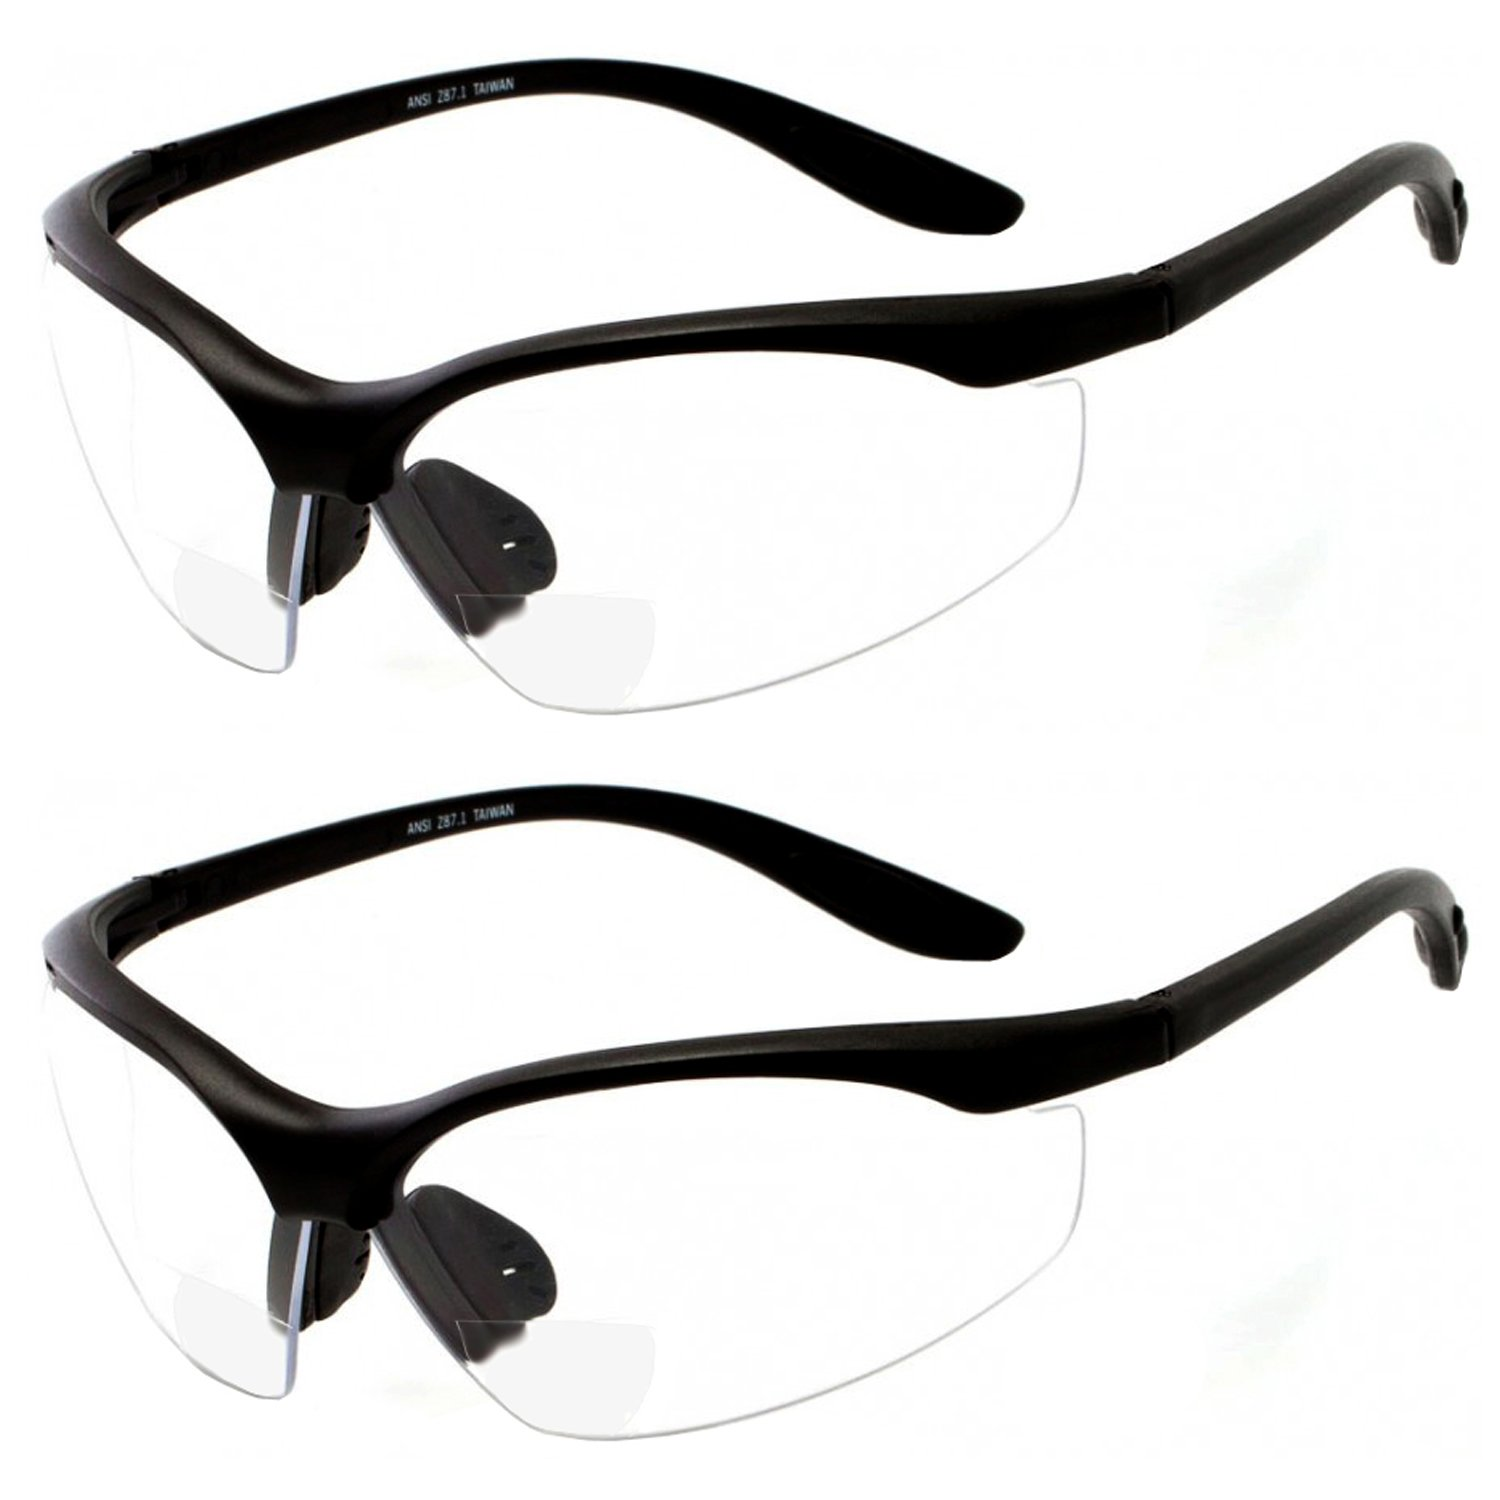 2 Pairs Bifocal Safety Glasses Clear Lens with Reading Corner - Non-Slip Rubber Grip Diopter/+2.50 by grinderPUNCH